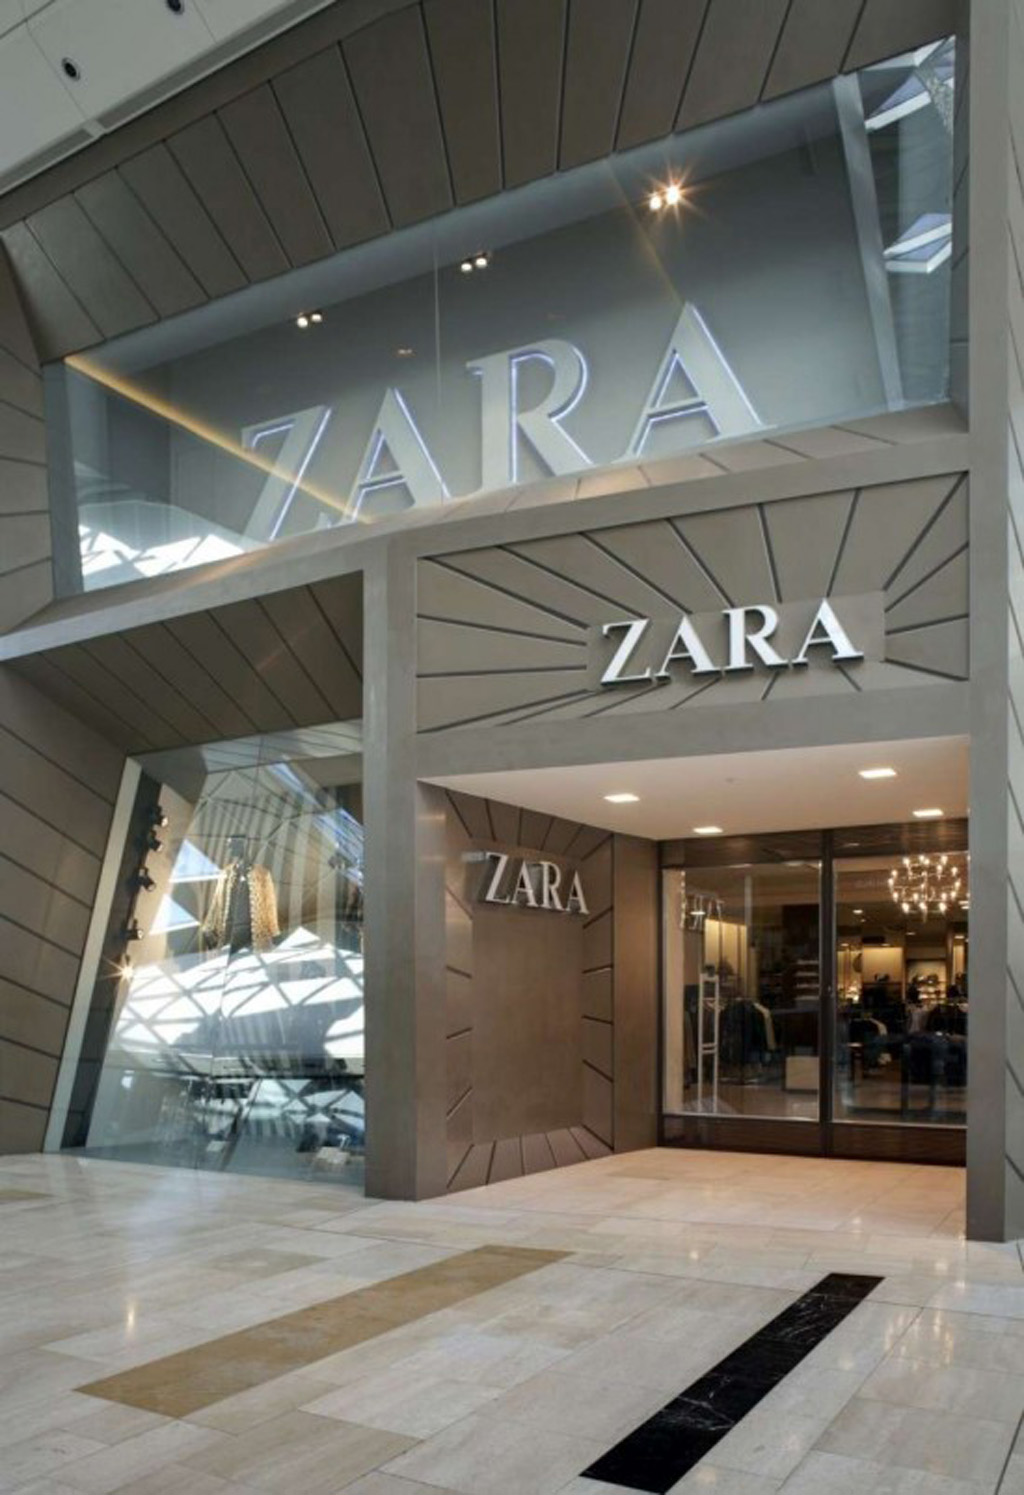 decor ideas one of 5 total pictures modern front wall design of zara